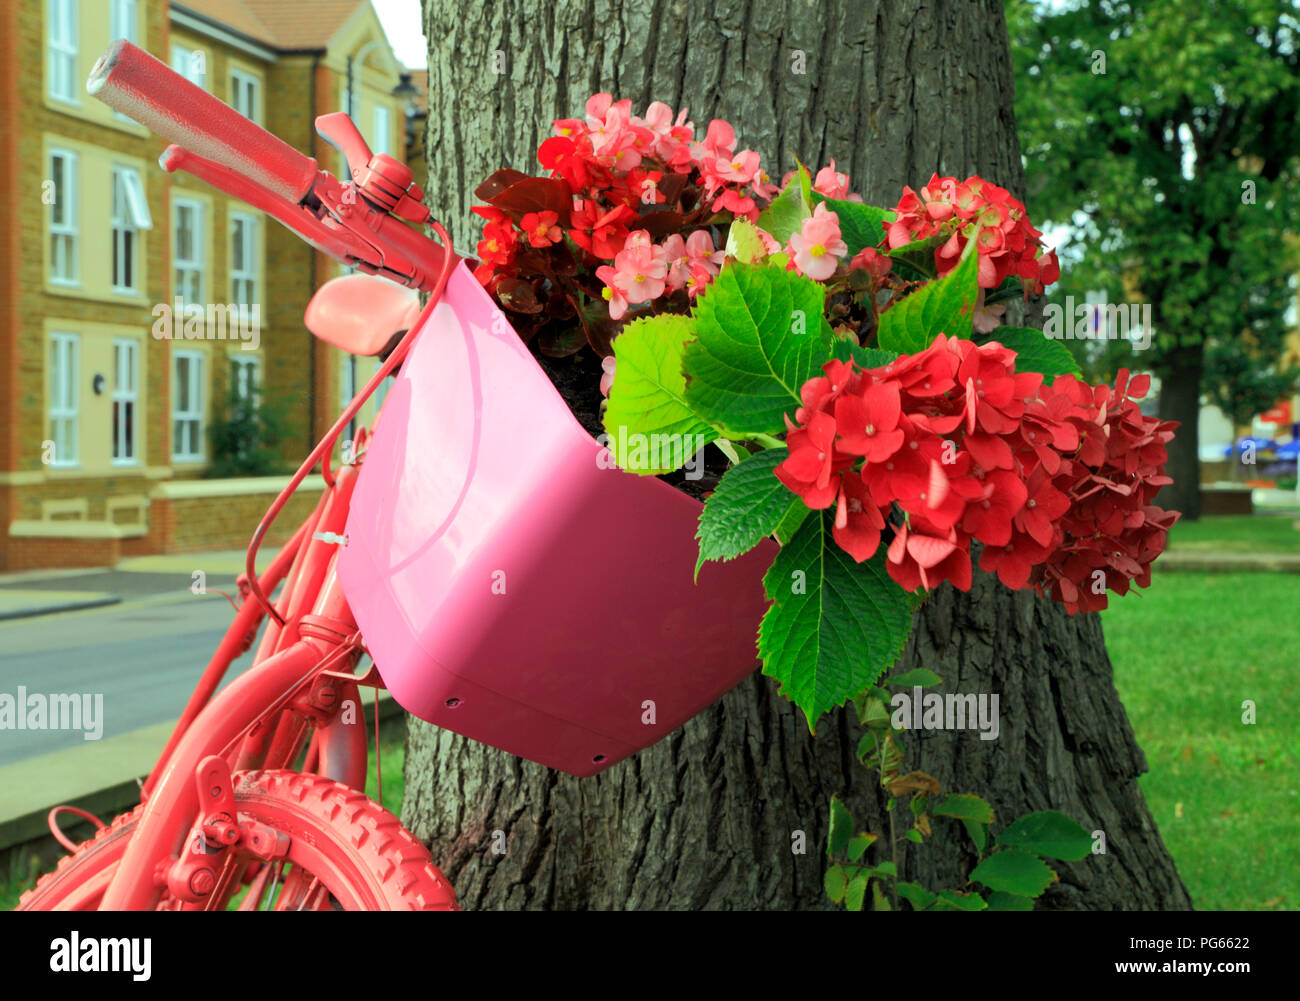 Hunstanton in Bloom, unusual plant container, pink painted bicycle, red, pink hydrangeas, flowers - Stock Image